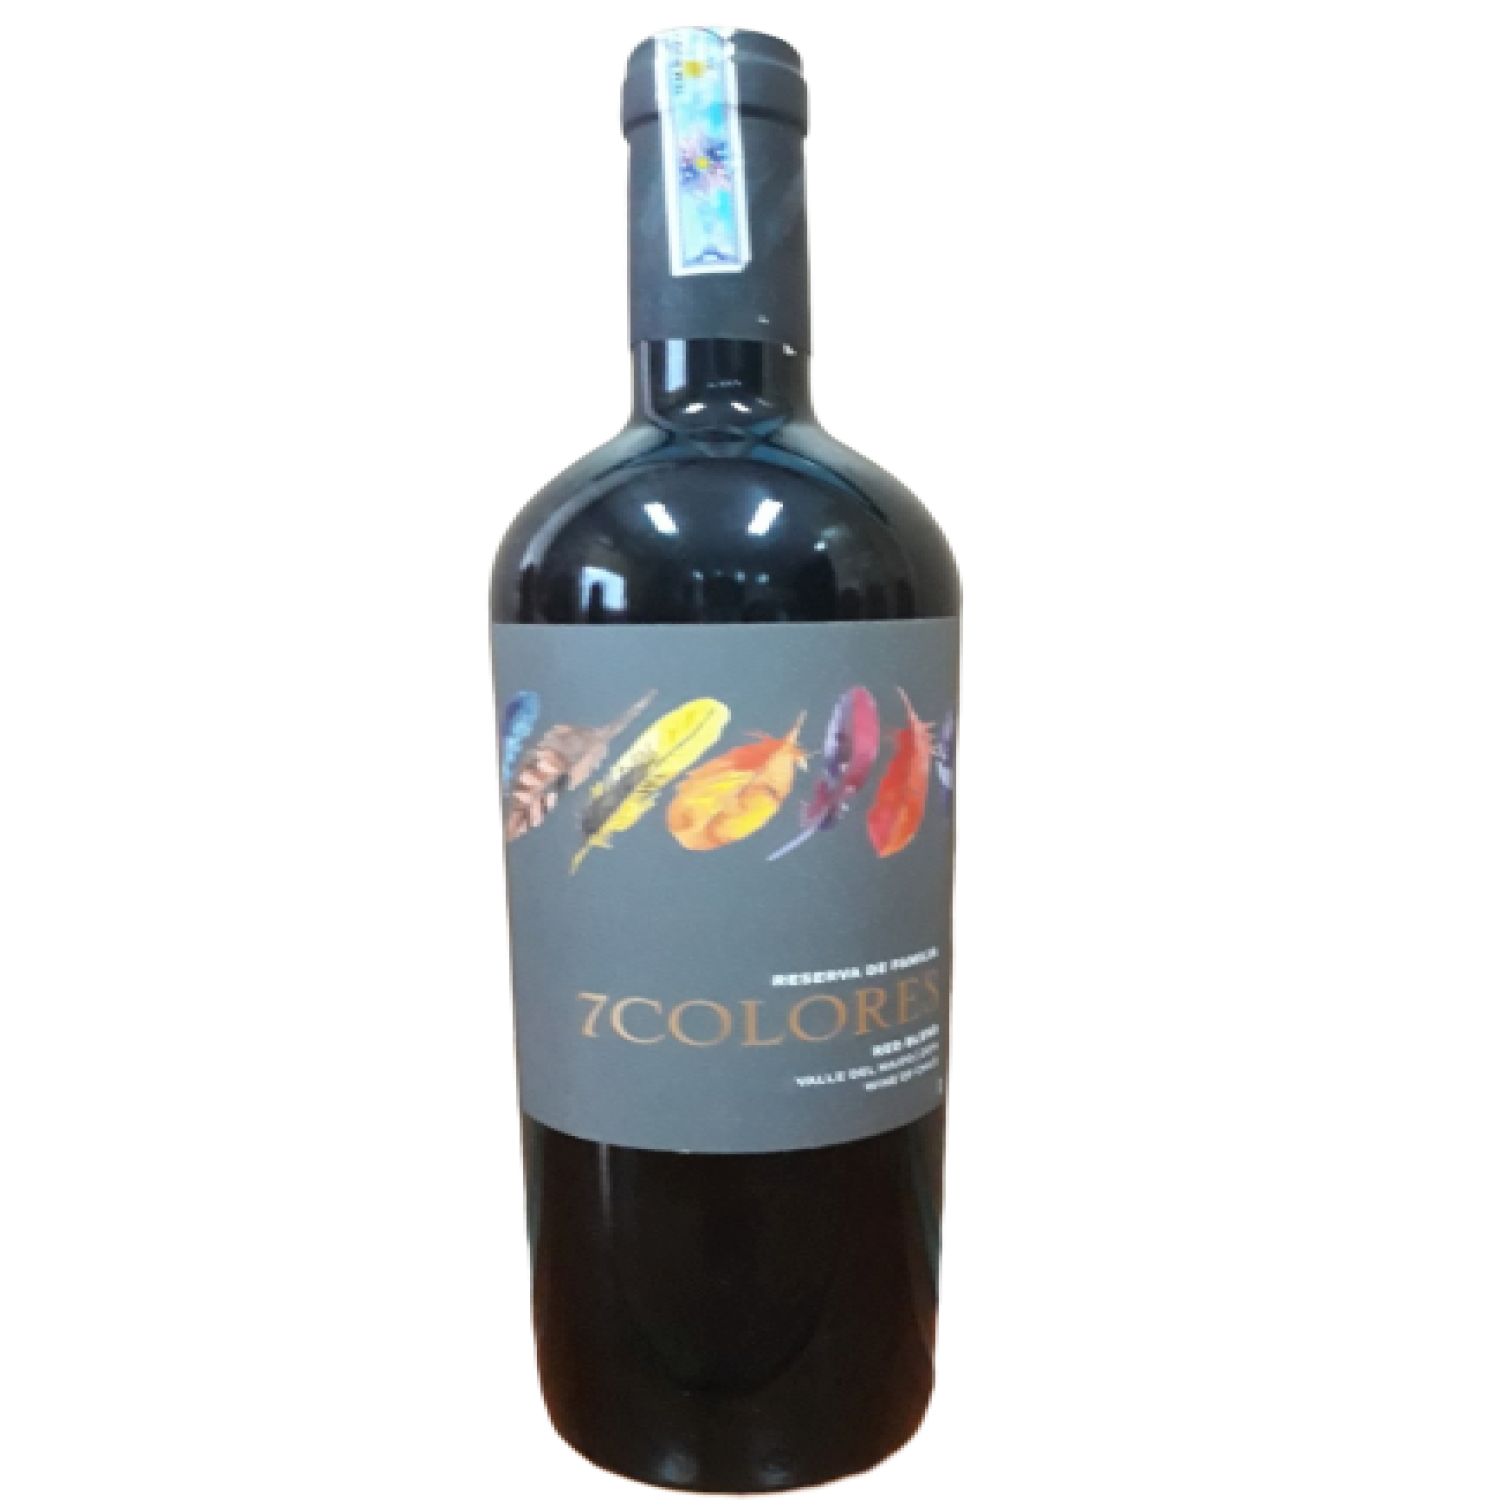 Rượu vang đỏ Chile - 7 Colores Red Blend Reserva de Familia 2014